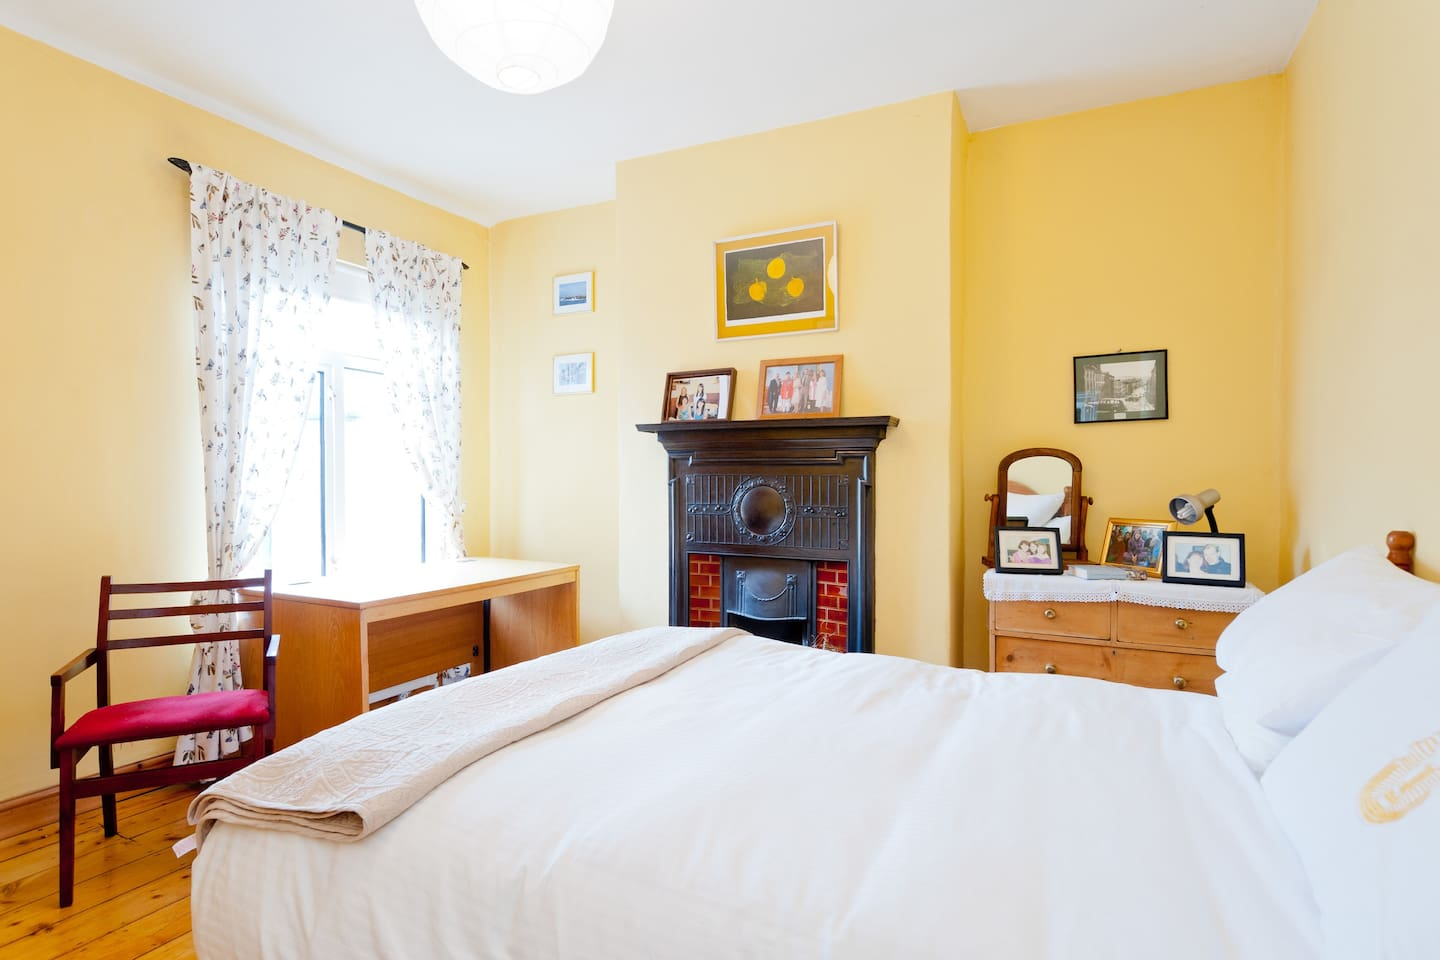 Lovely room with large comfortable double bed